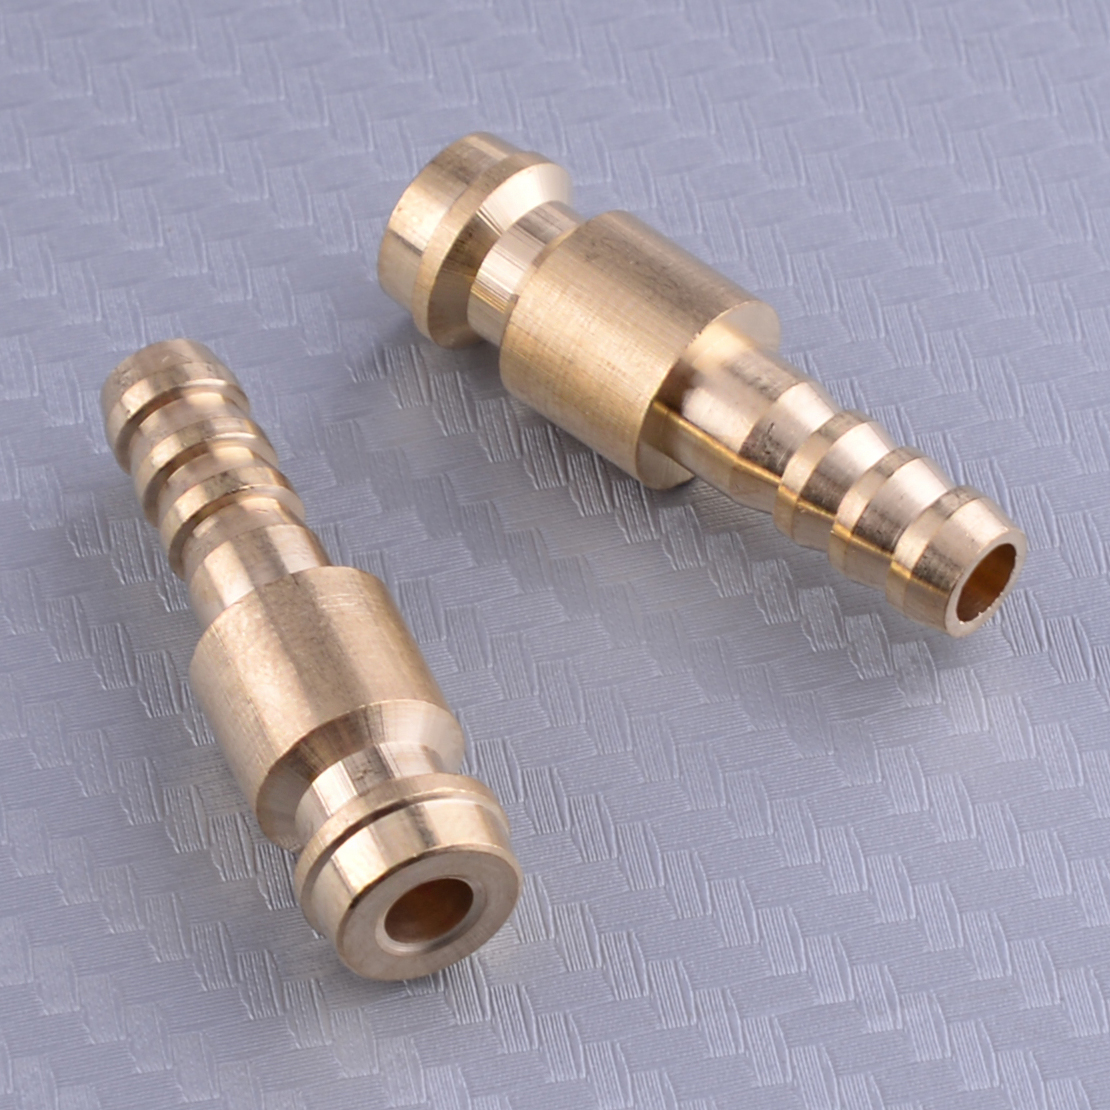 2pcs 6mm Gold Dia. Gas & Water Male Adapter Quick Connector Replacement For TIG Welding Torch Intake